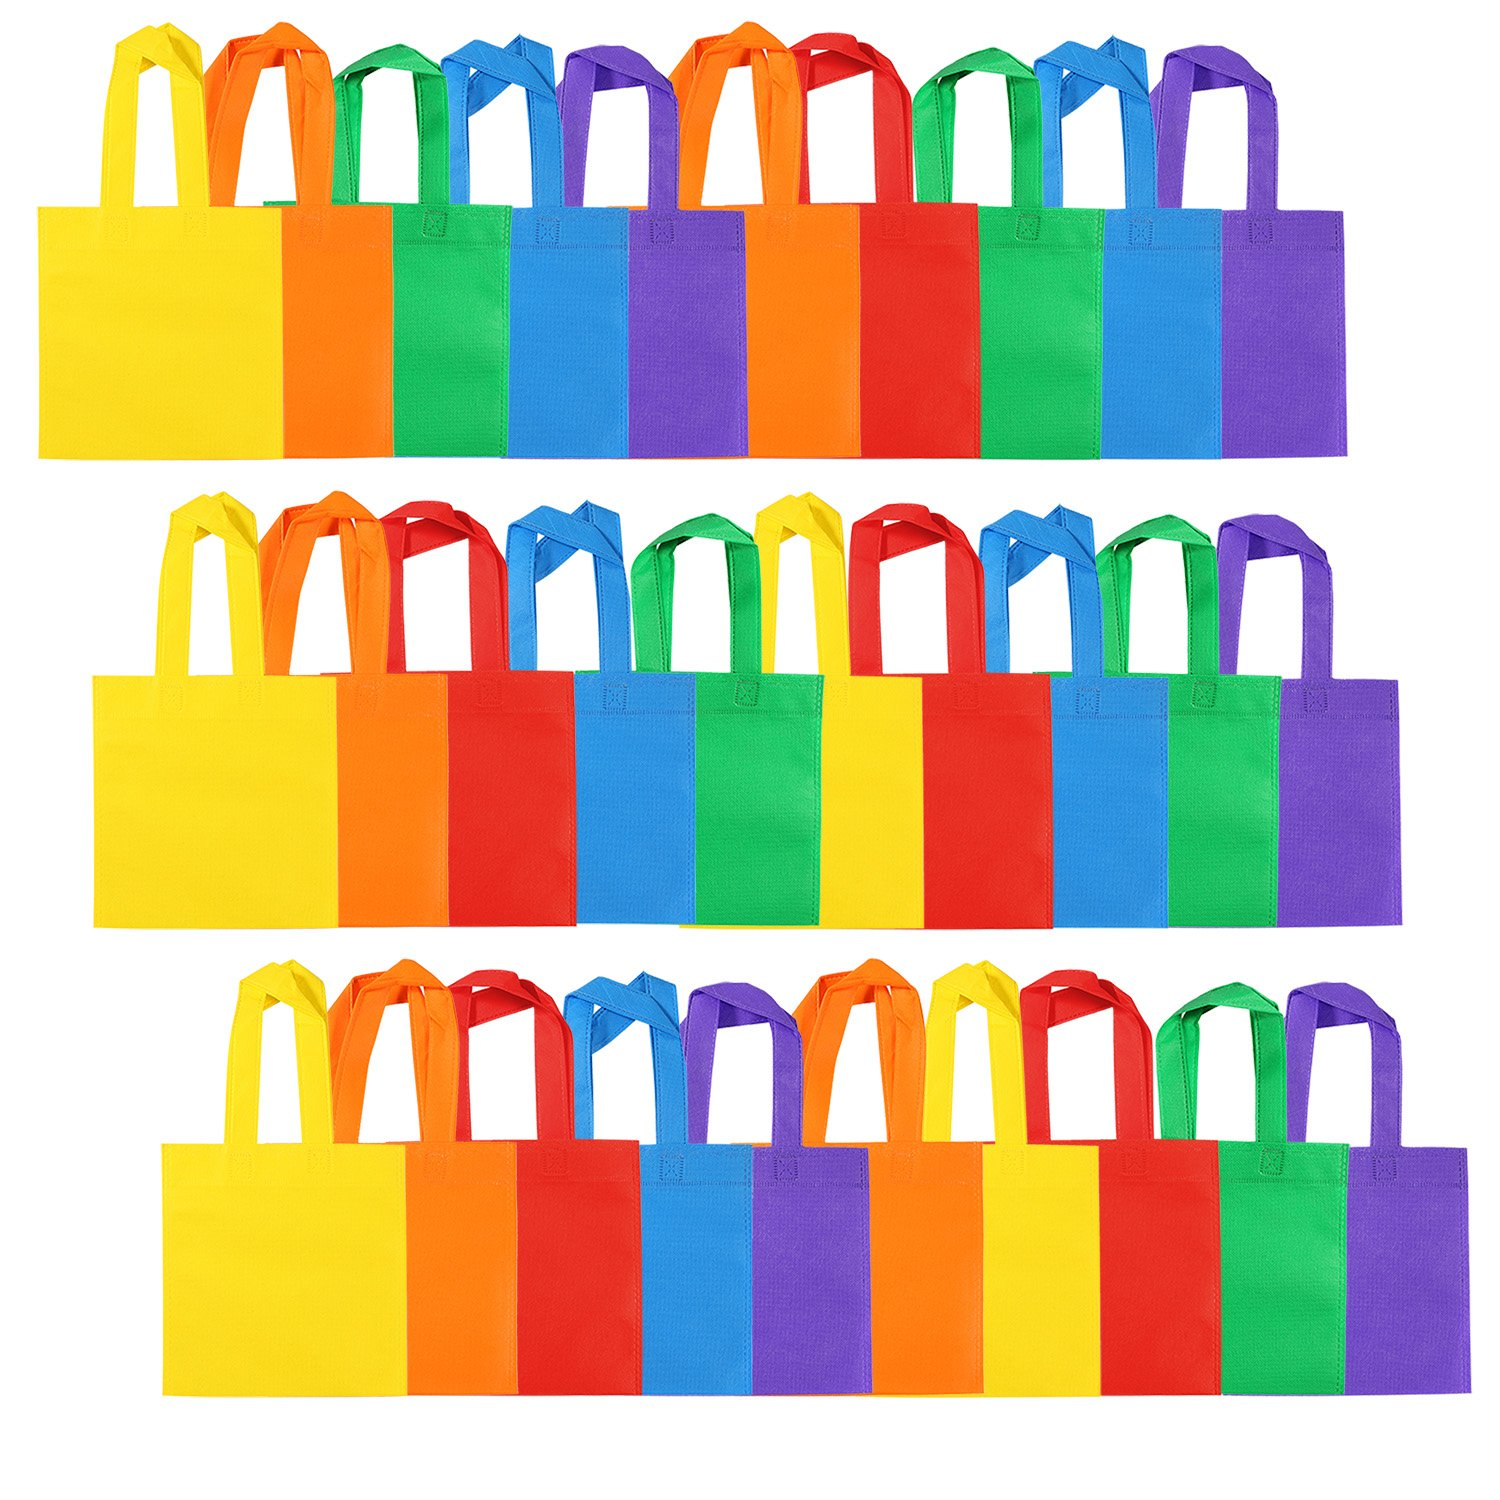 Aneco 30 Pieces 8 by 8 Inches Non-woven Party Bags Tote Bags Party Goodie Treat Bag Rainbow Colors Gift Bag with Handles for Birthday Party Favor, 6 Colors by Aneco